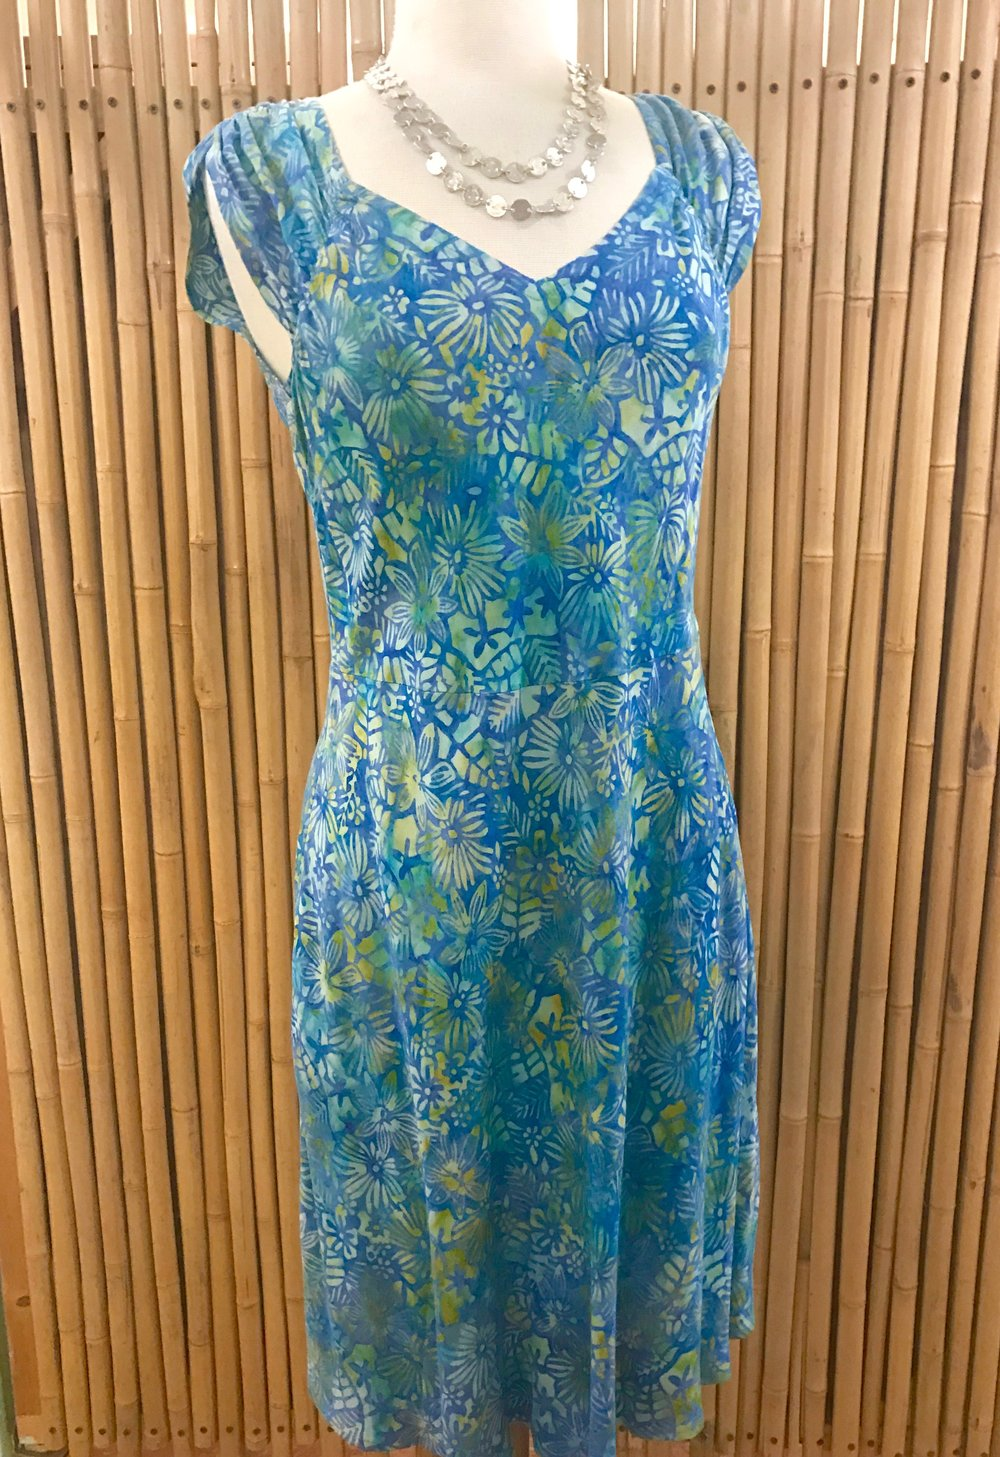 Batik dress by Oceania